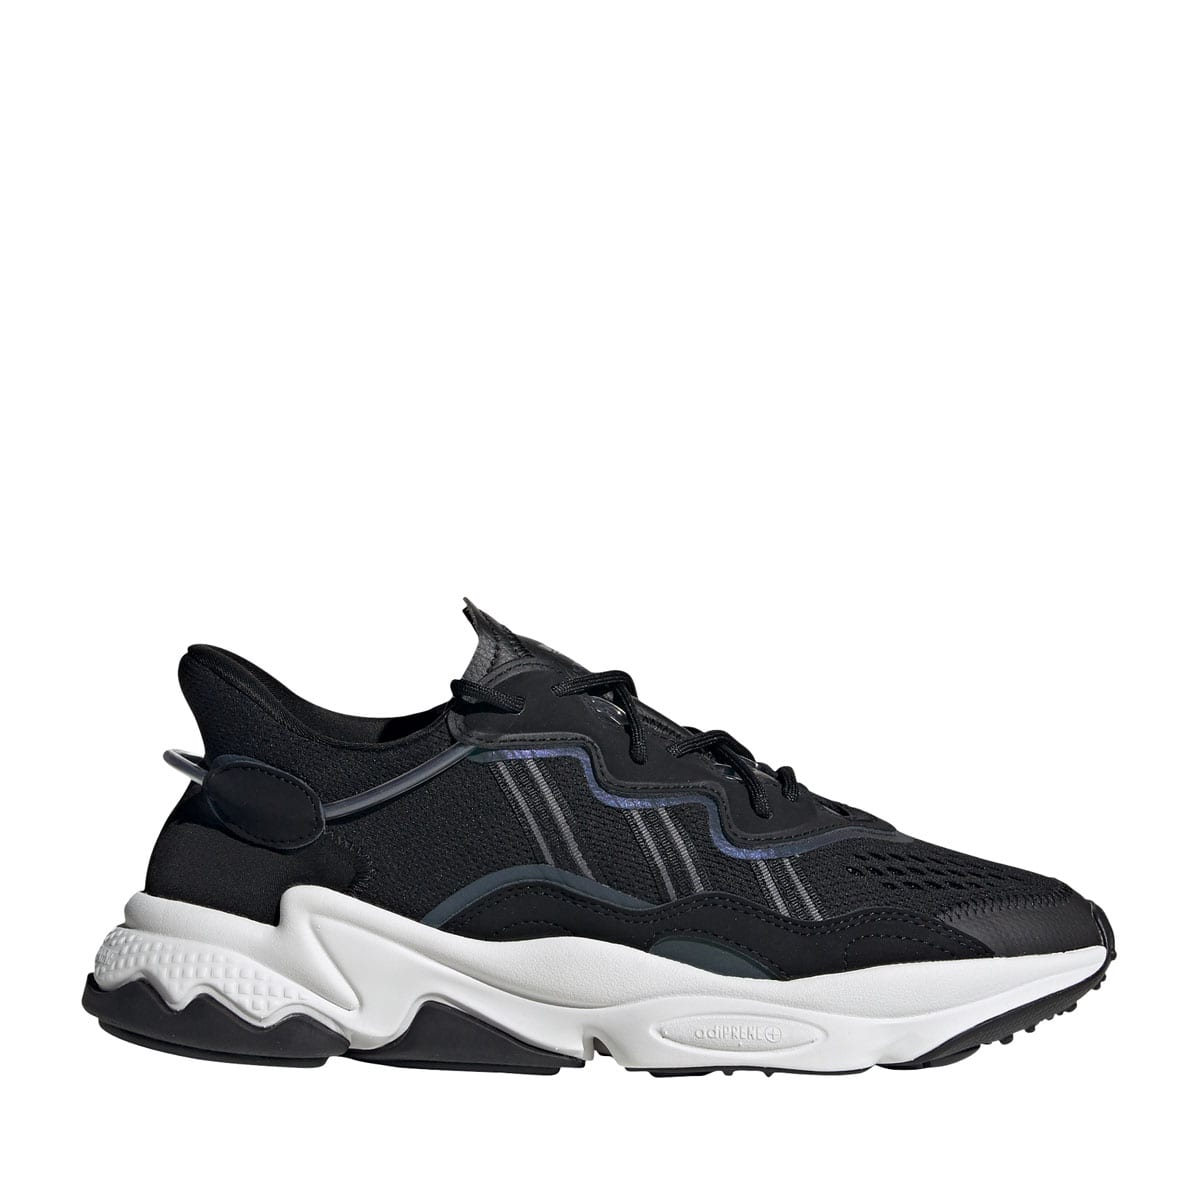 adidas OZWEEGO CORE BLACK/GREY SIX/CRYSTAL WHITE 20SS-I_photo_large